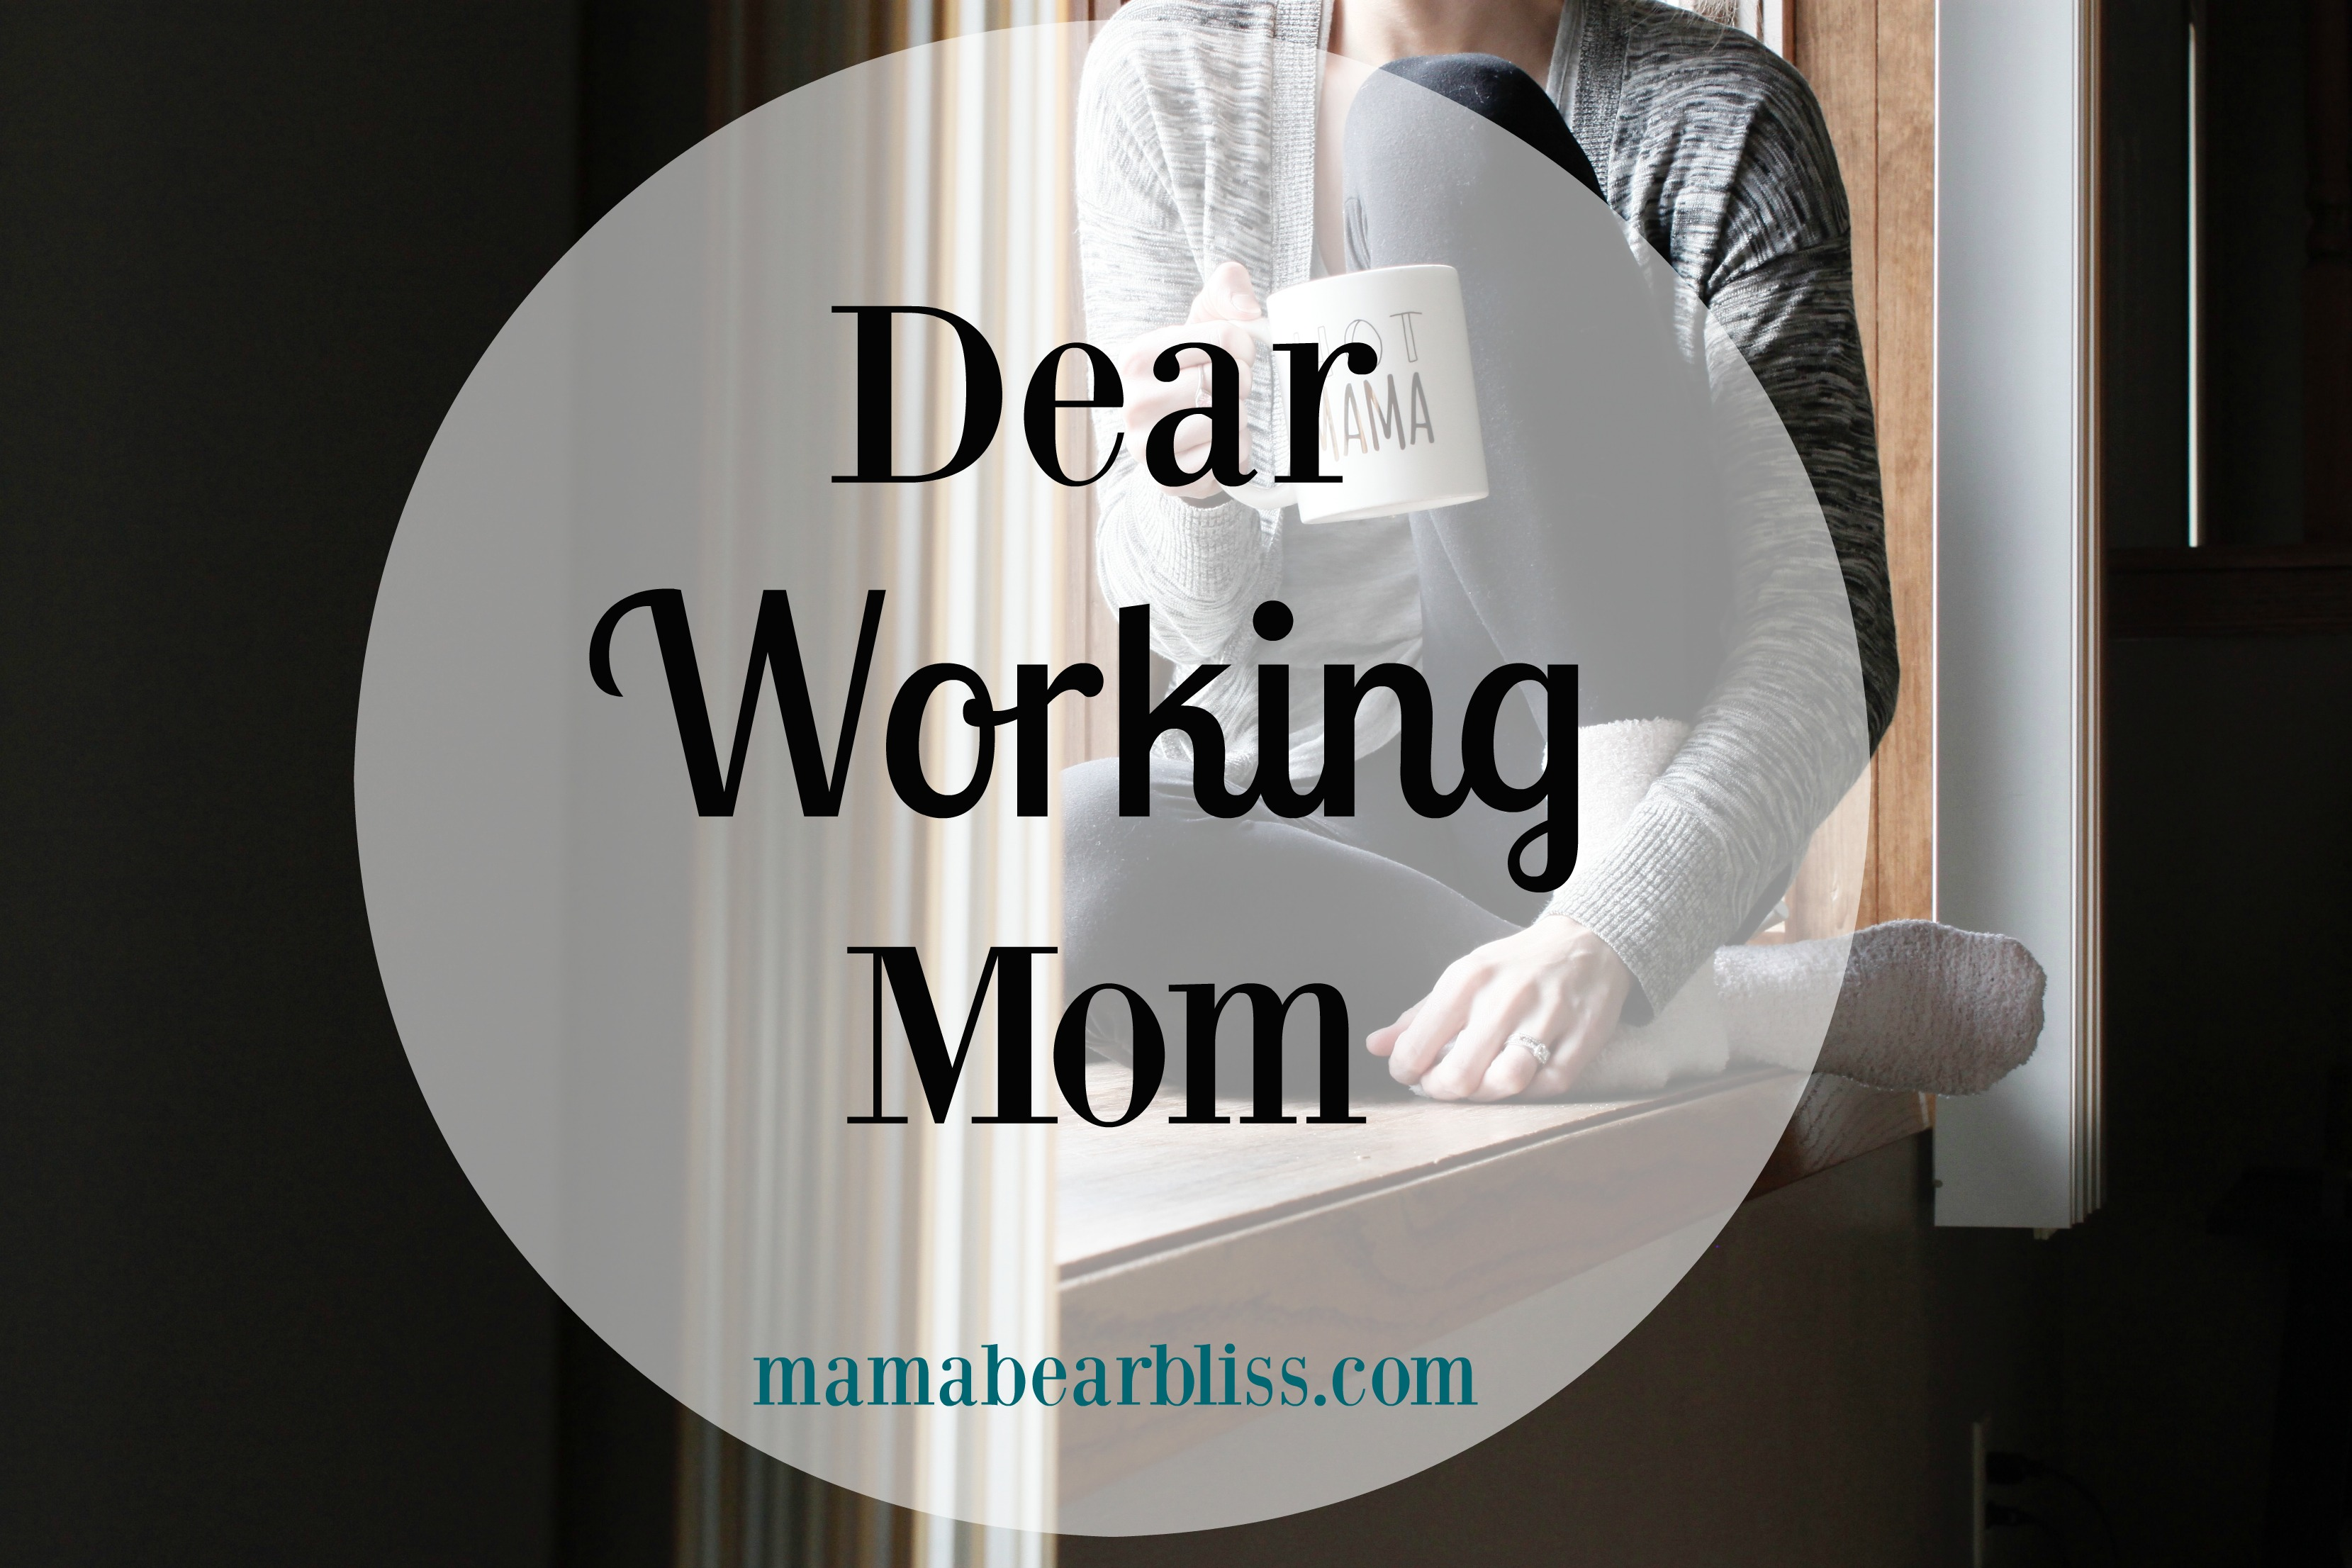 Dear Working Mom